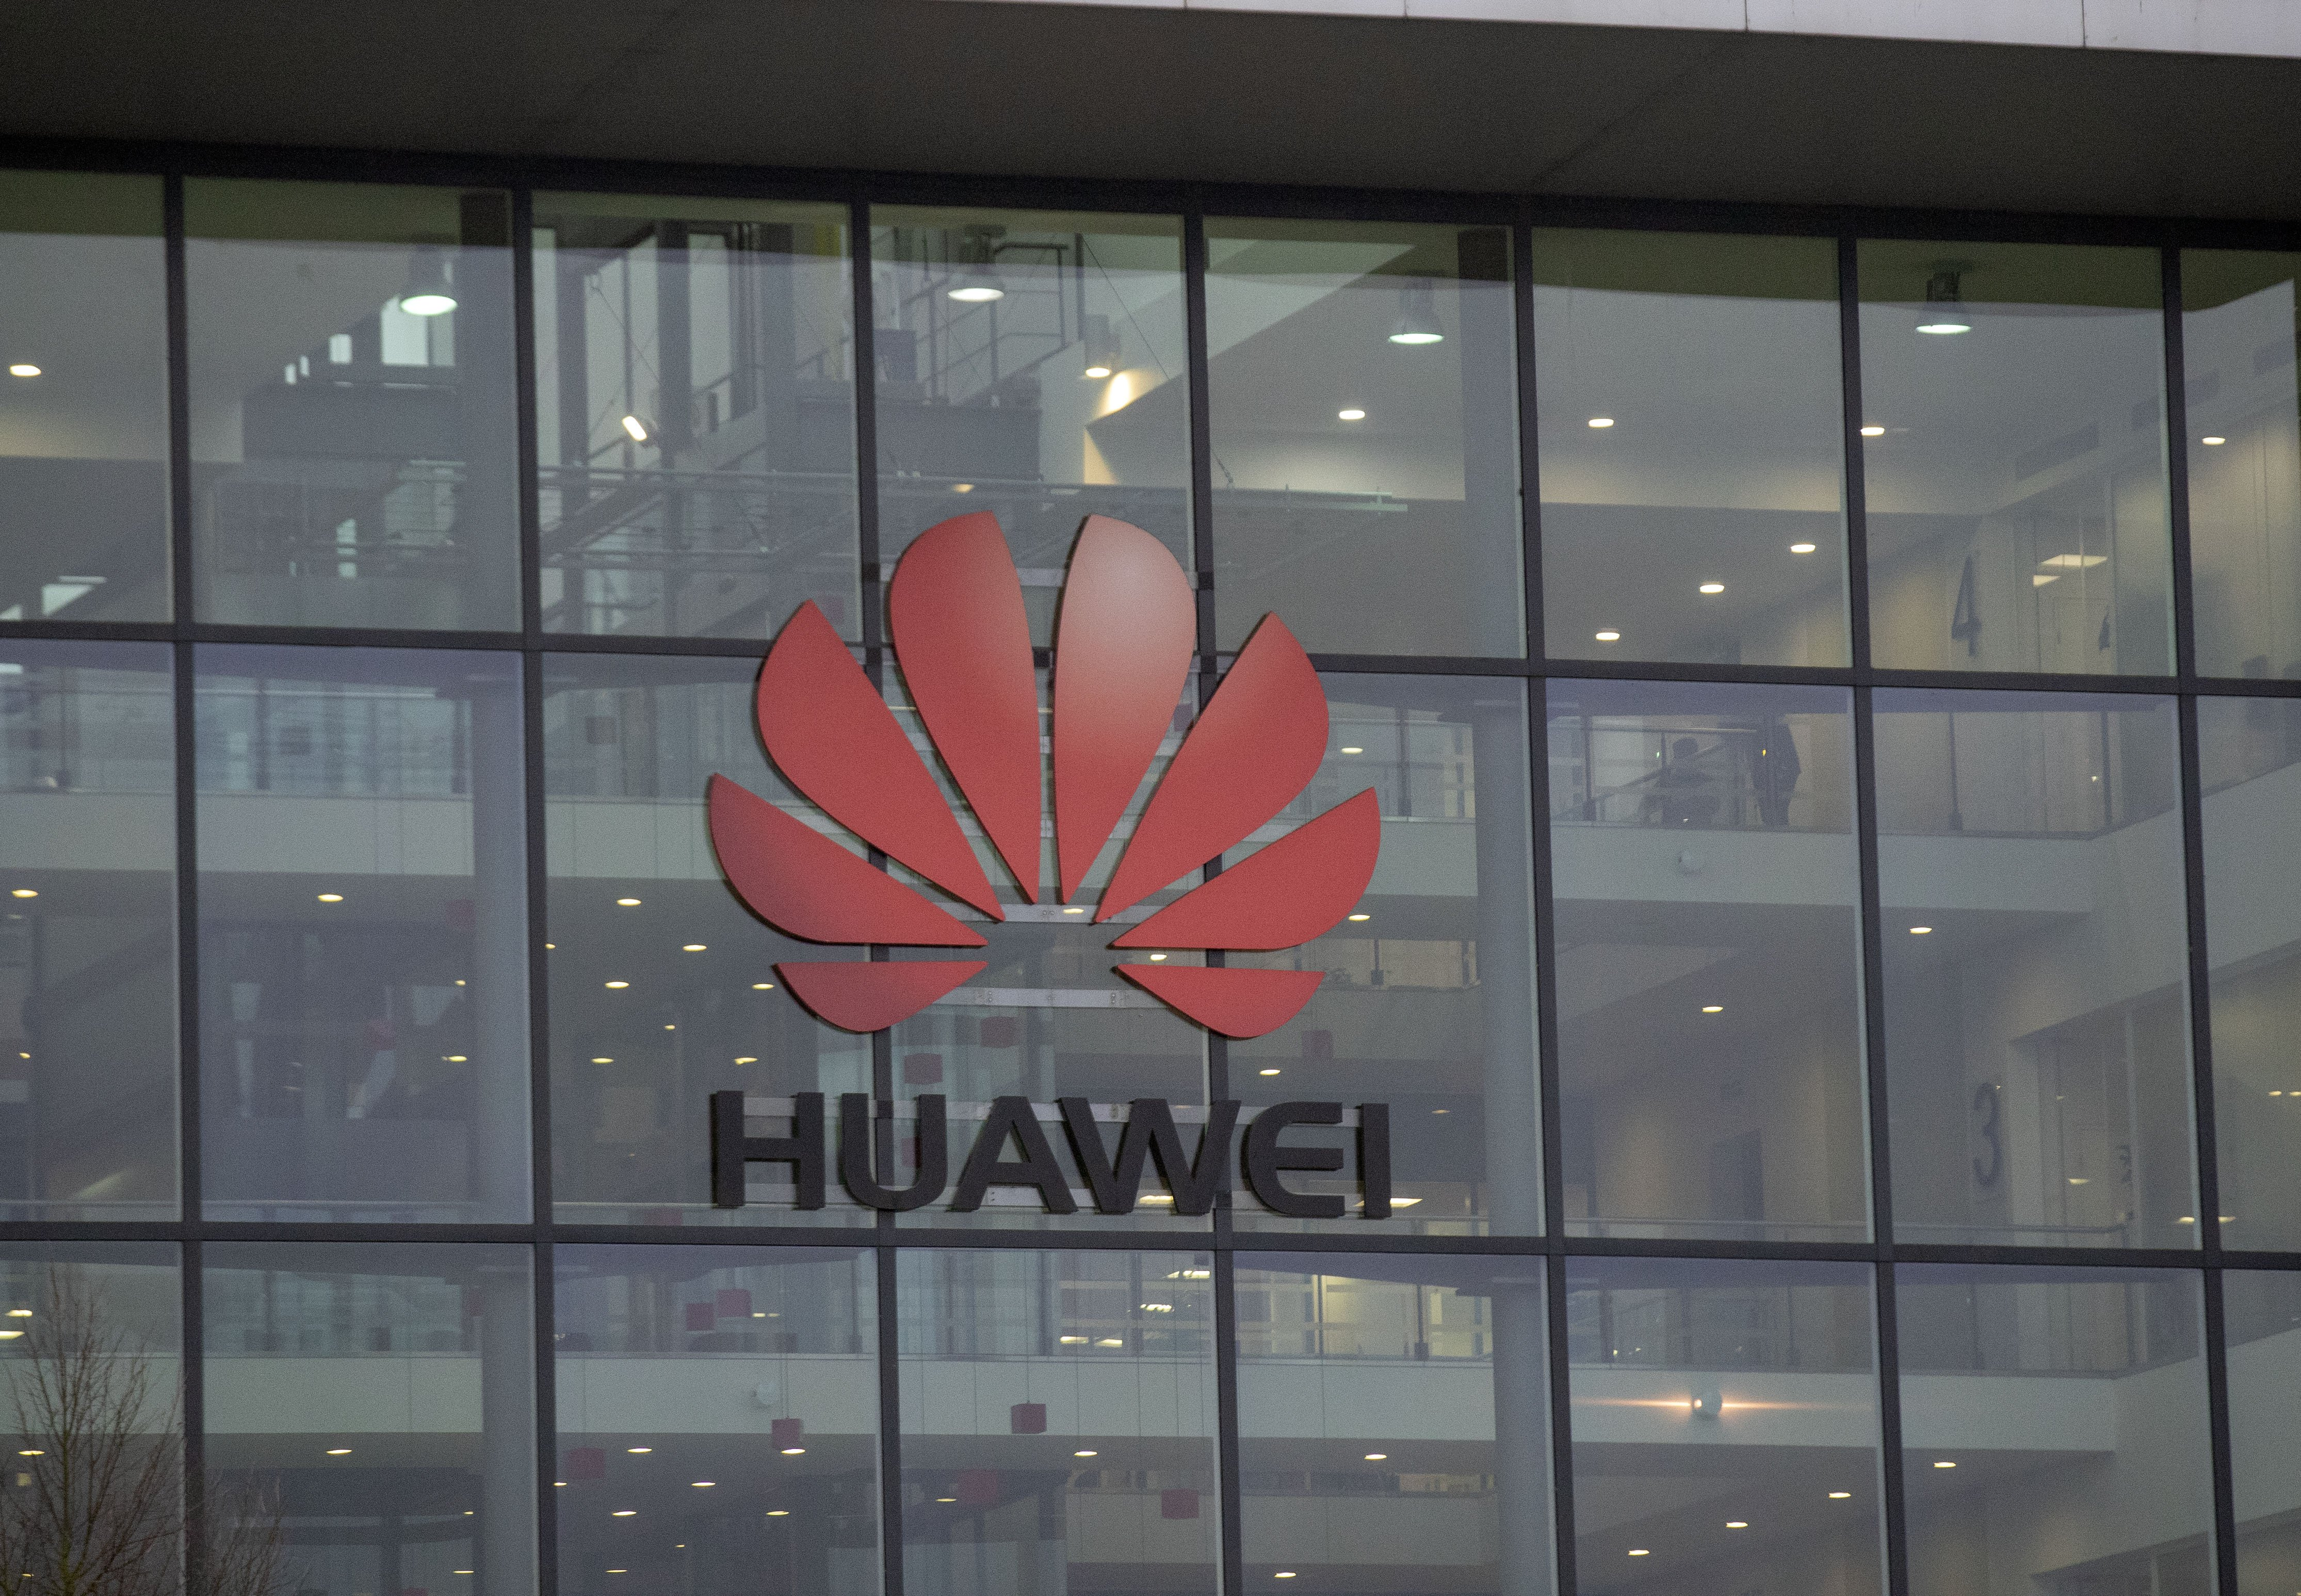 UK Cabinet Ministers to Hand Over Mobile Phones in Huawei Leak Inquiry